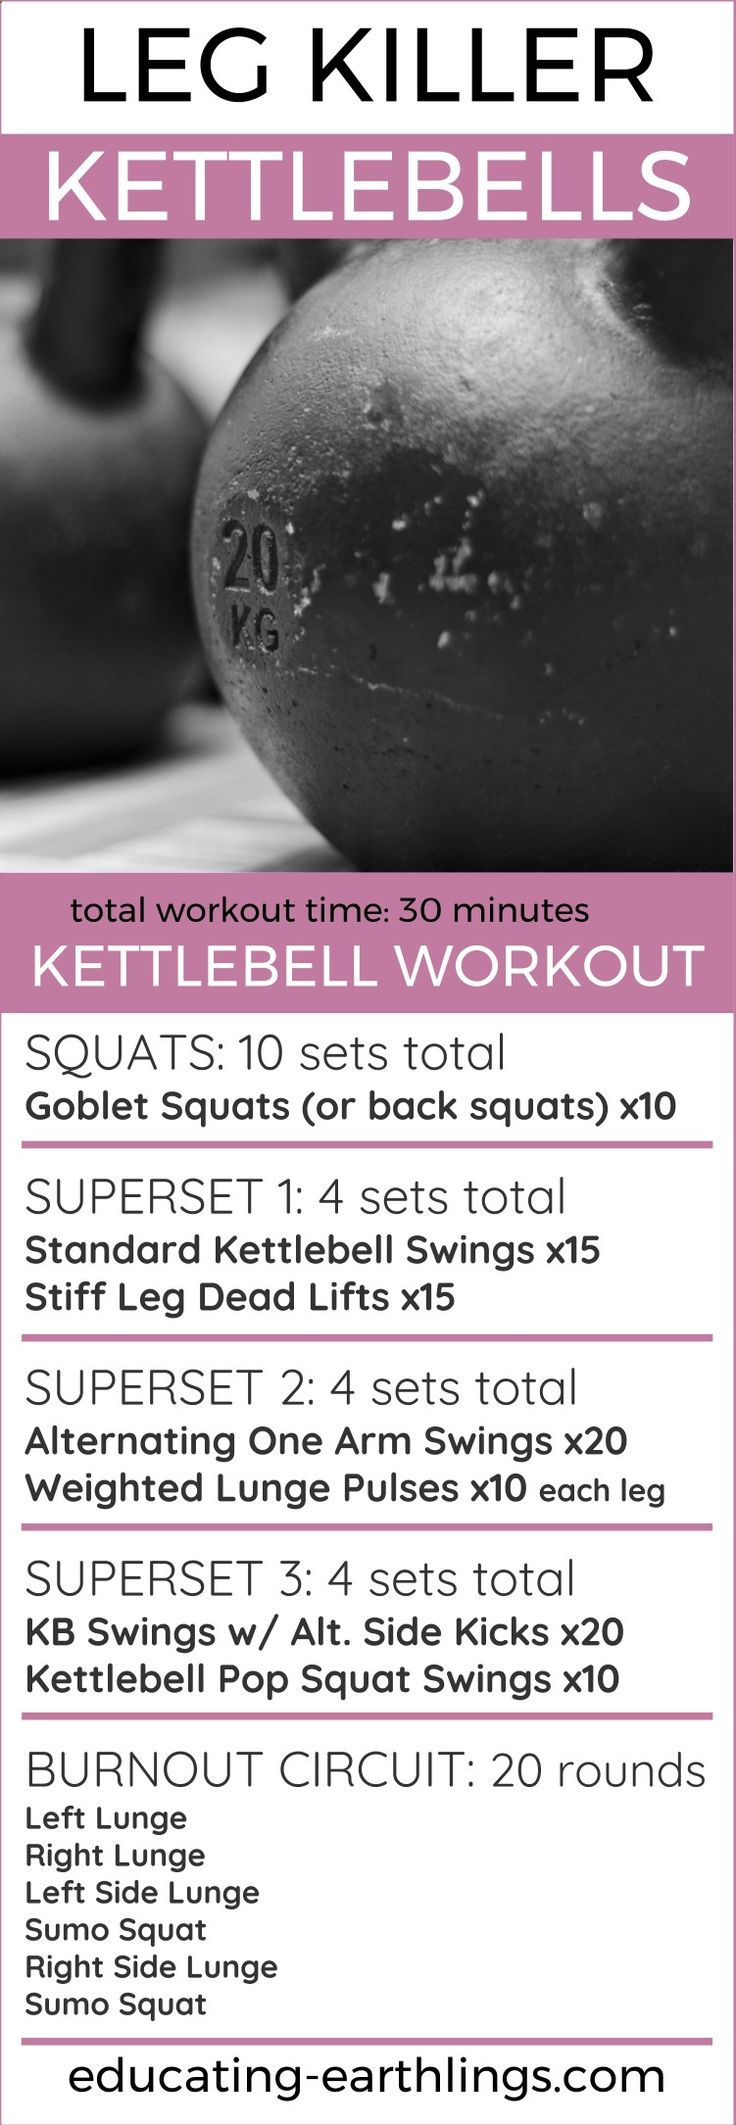 hiit workout example at home